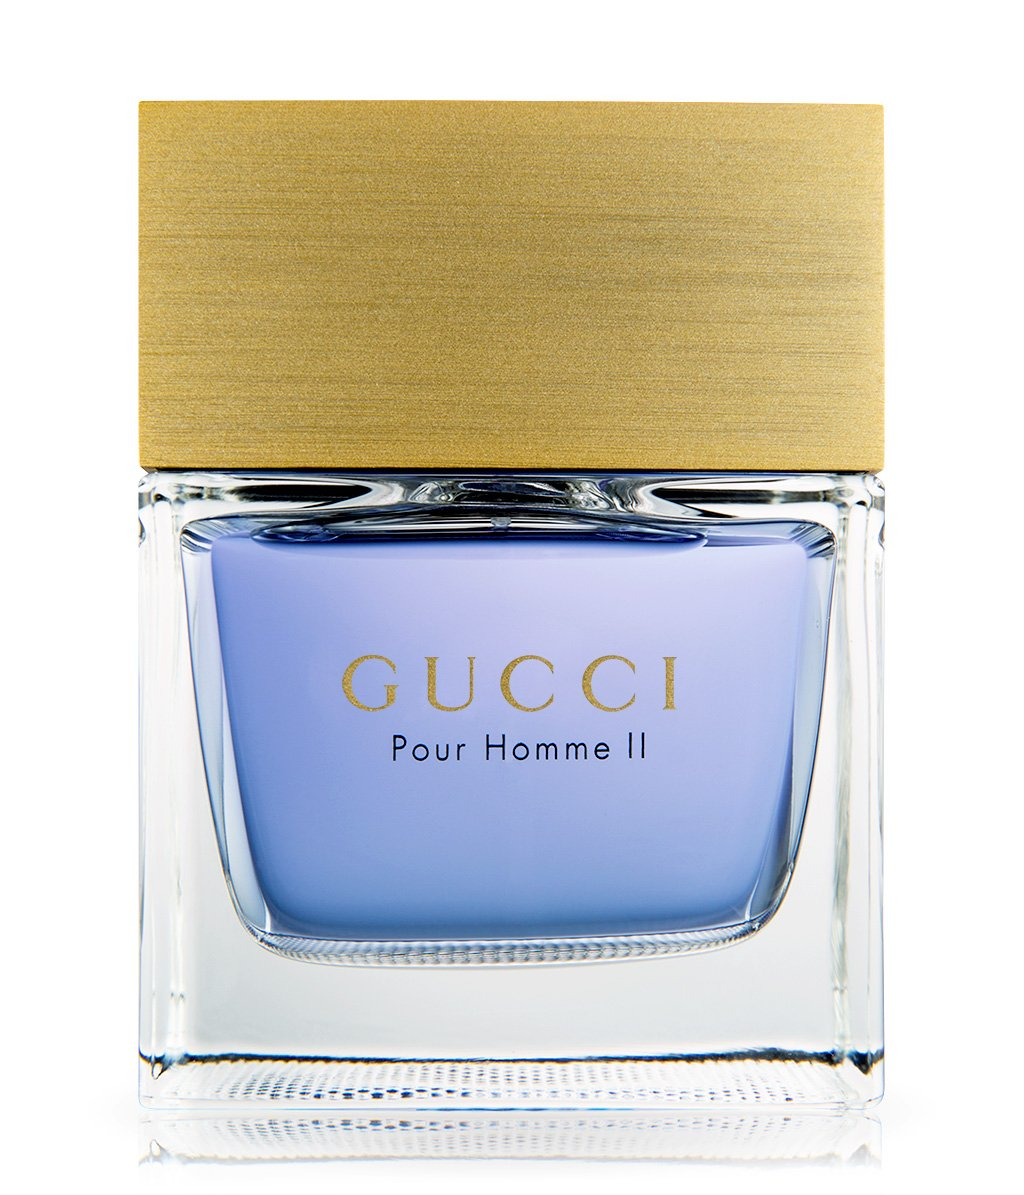 gucci pour homme 2 parfum online bestellen flaconi. Black Bedroom Furniture Sets. Home Design Ideas